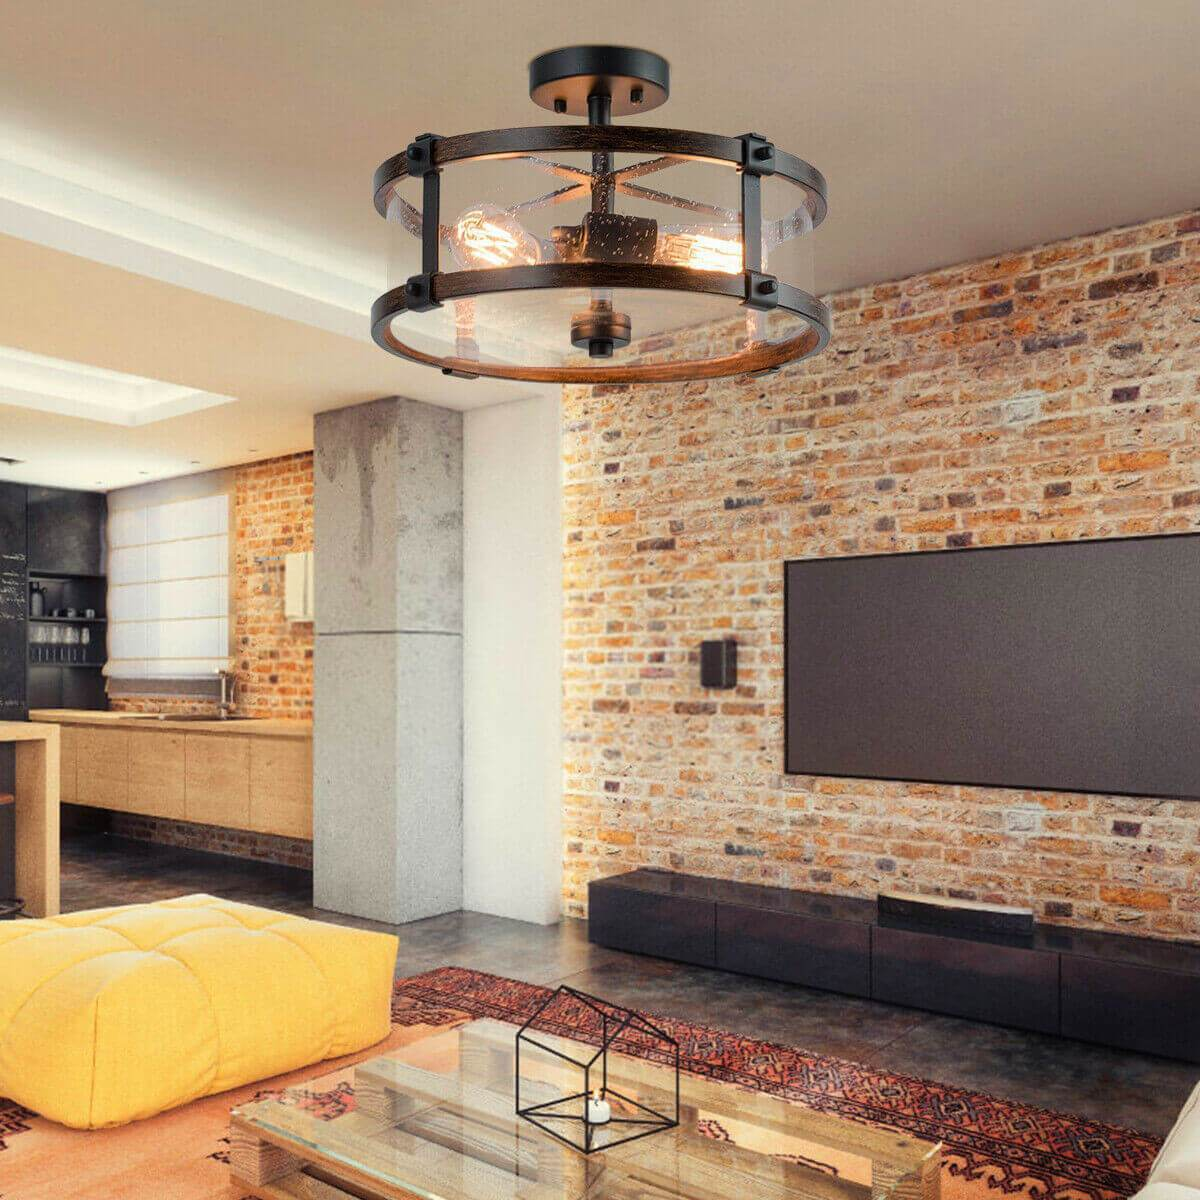 3-Light Living Room Retro Flush Mount Ceiling Light - at´creative